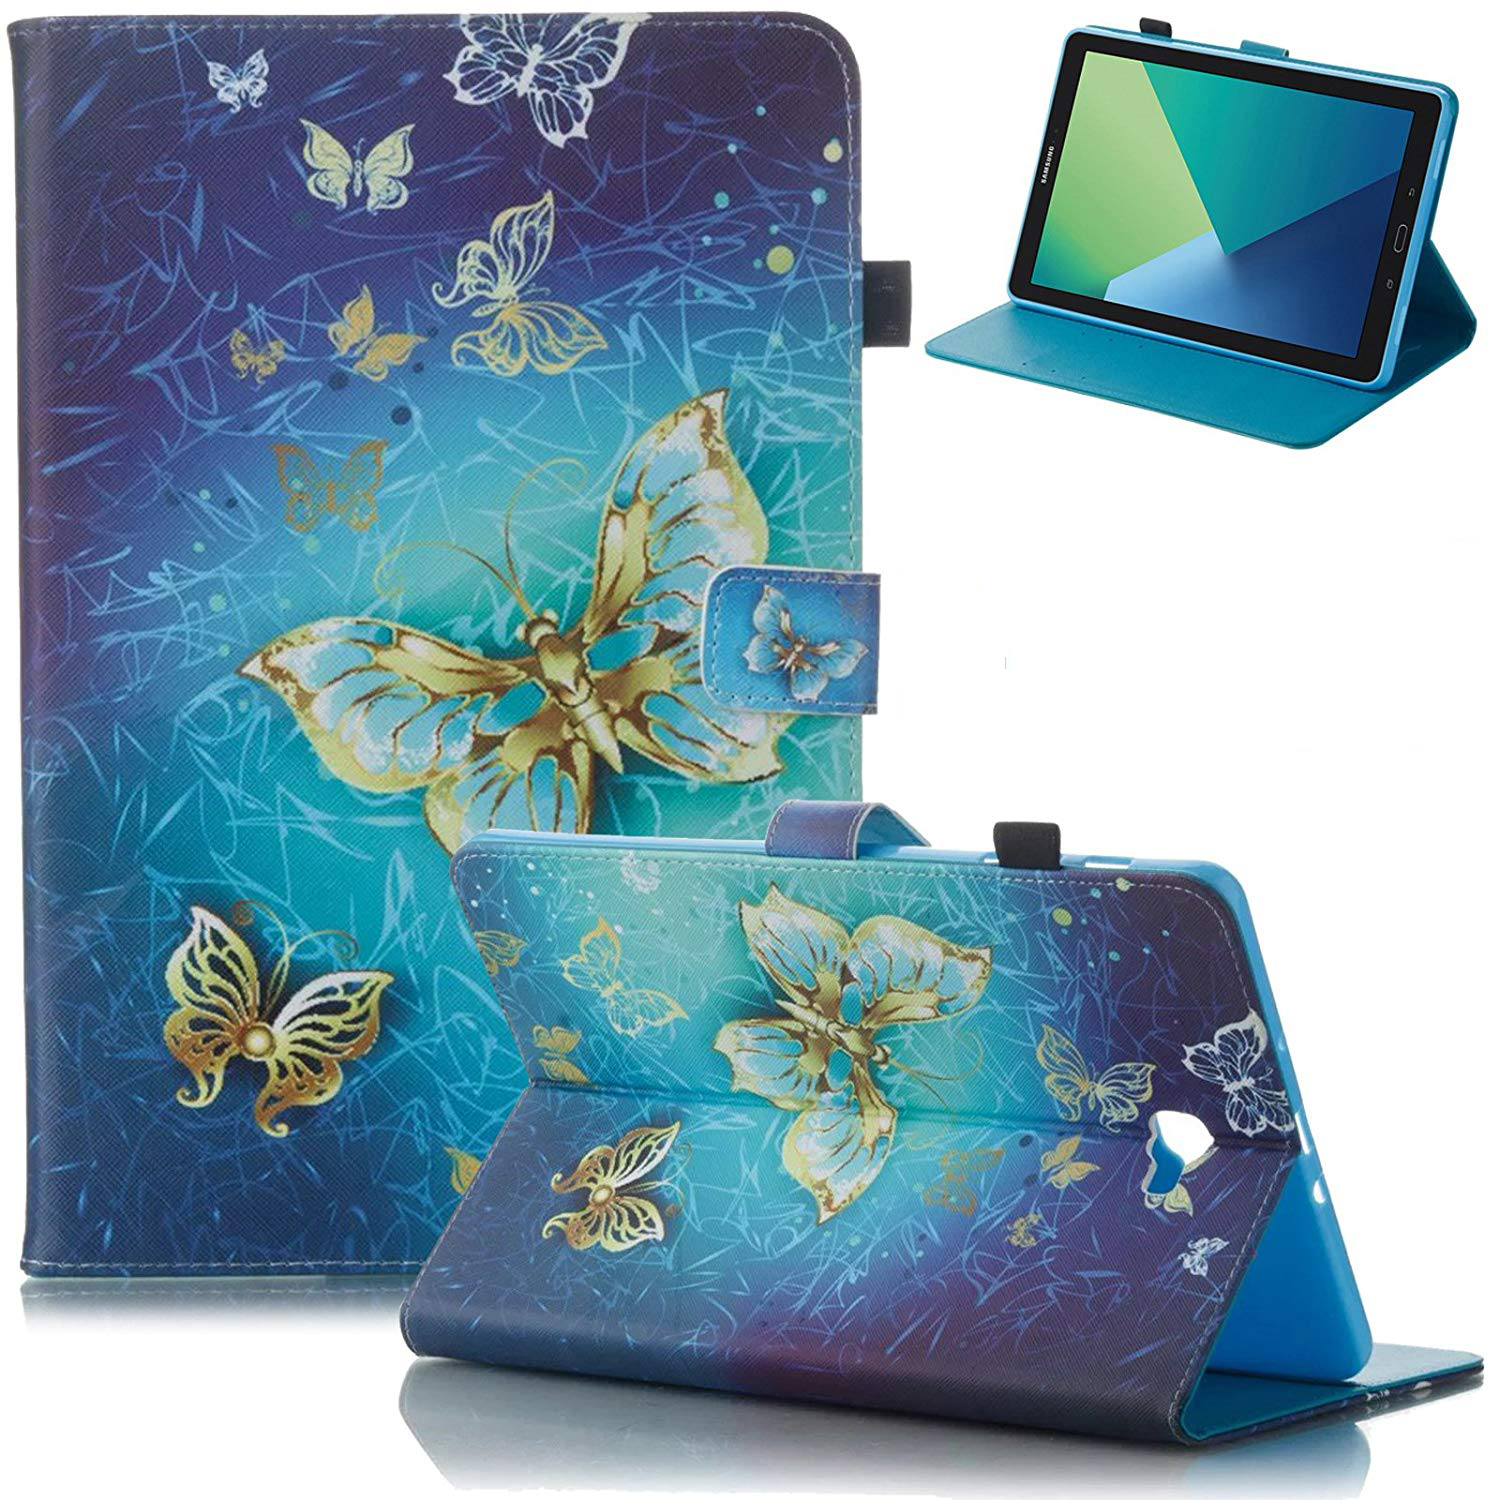 All-New Fire HD 8-inch 2017 2016 2015 Case, Goodest Ultra Slim PU Leather Folio Folding Stand Cover with Auto Wake Sleep for Amazon Kindle Fire HD 8 Tablet (7th/6th/5th Generation), Butterfly